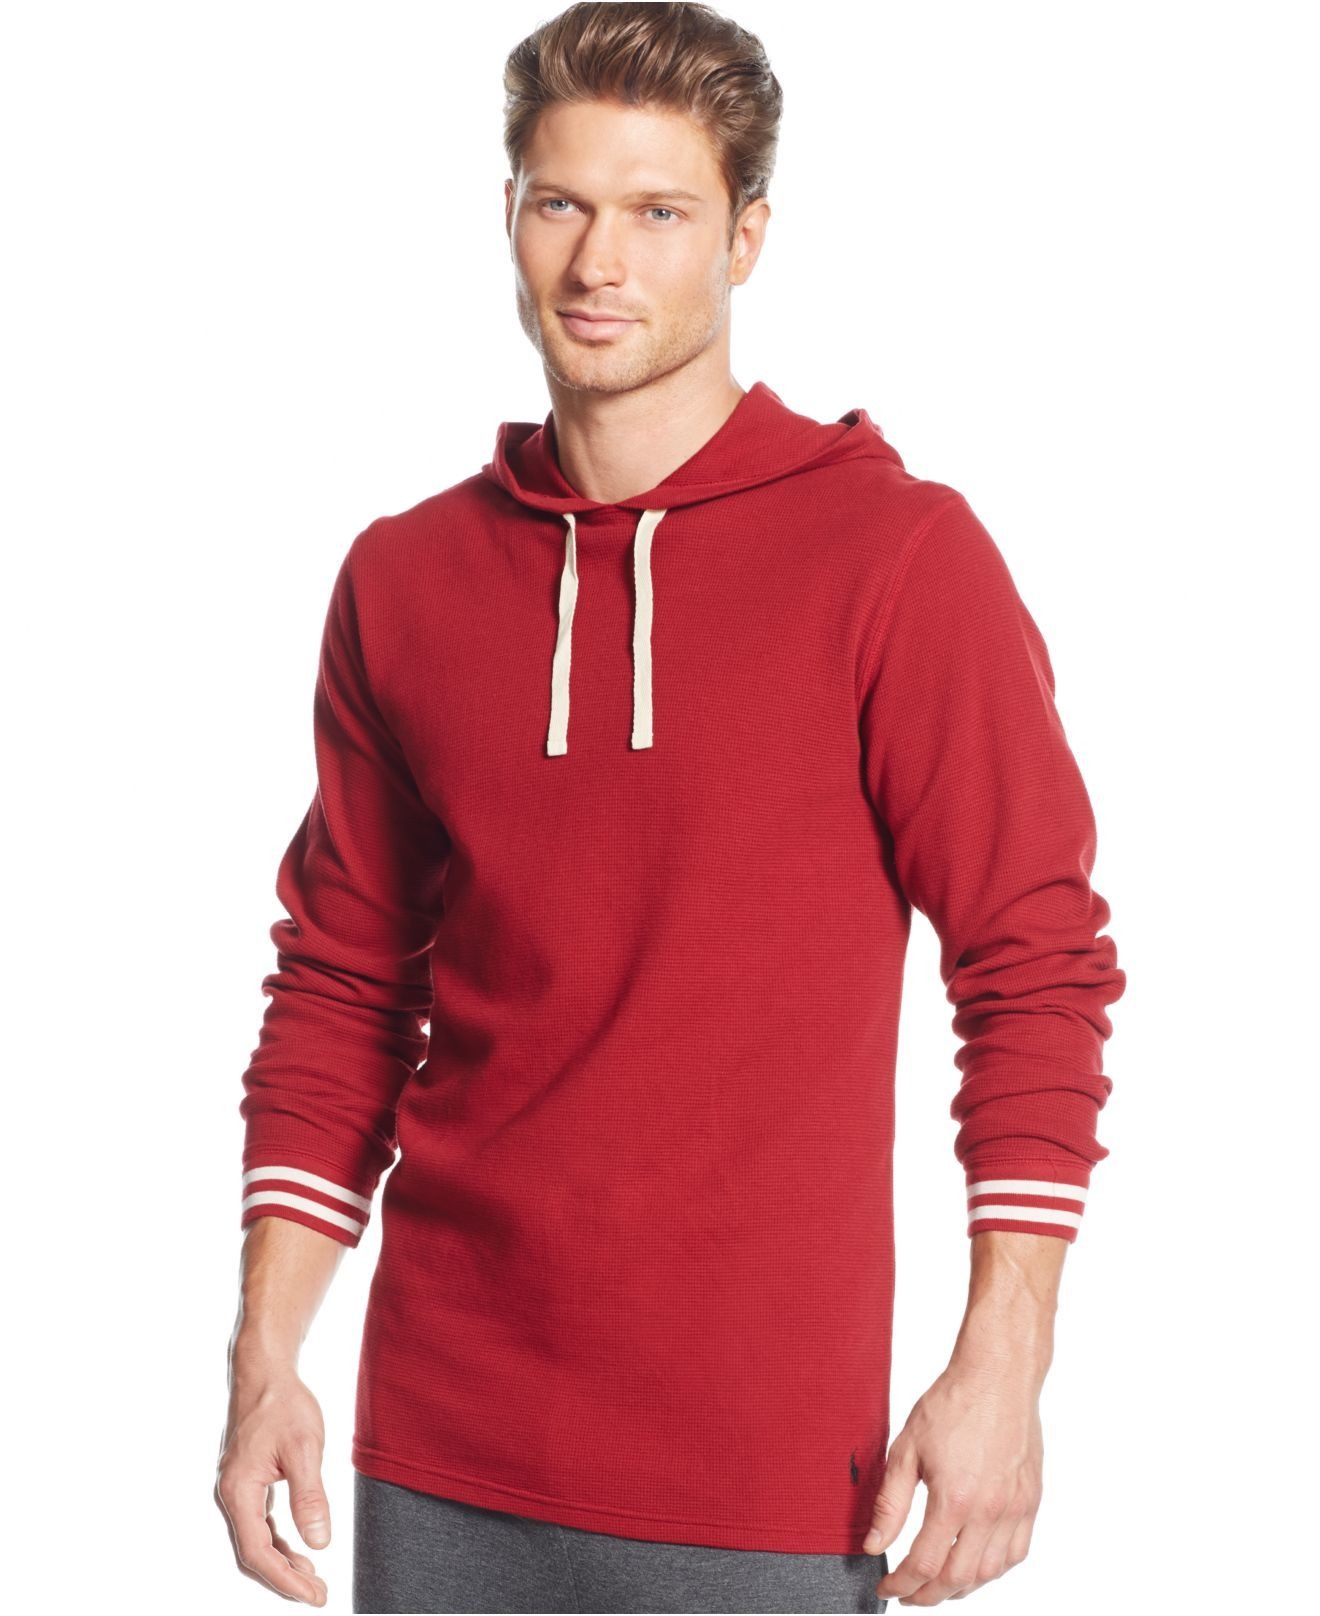 a2216474 polo-ralph-lauren-avenue-red-mens-solid-raglan-waffle-thermal-hoodie-red-product-0-592098239-normal.jpeg  (1320 1616) | POLO RALPH LAUREN | Pinterest | Polo ...